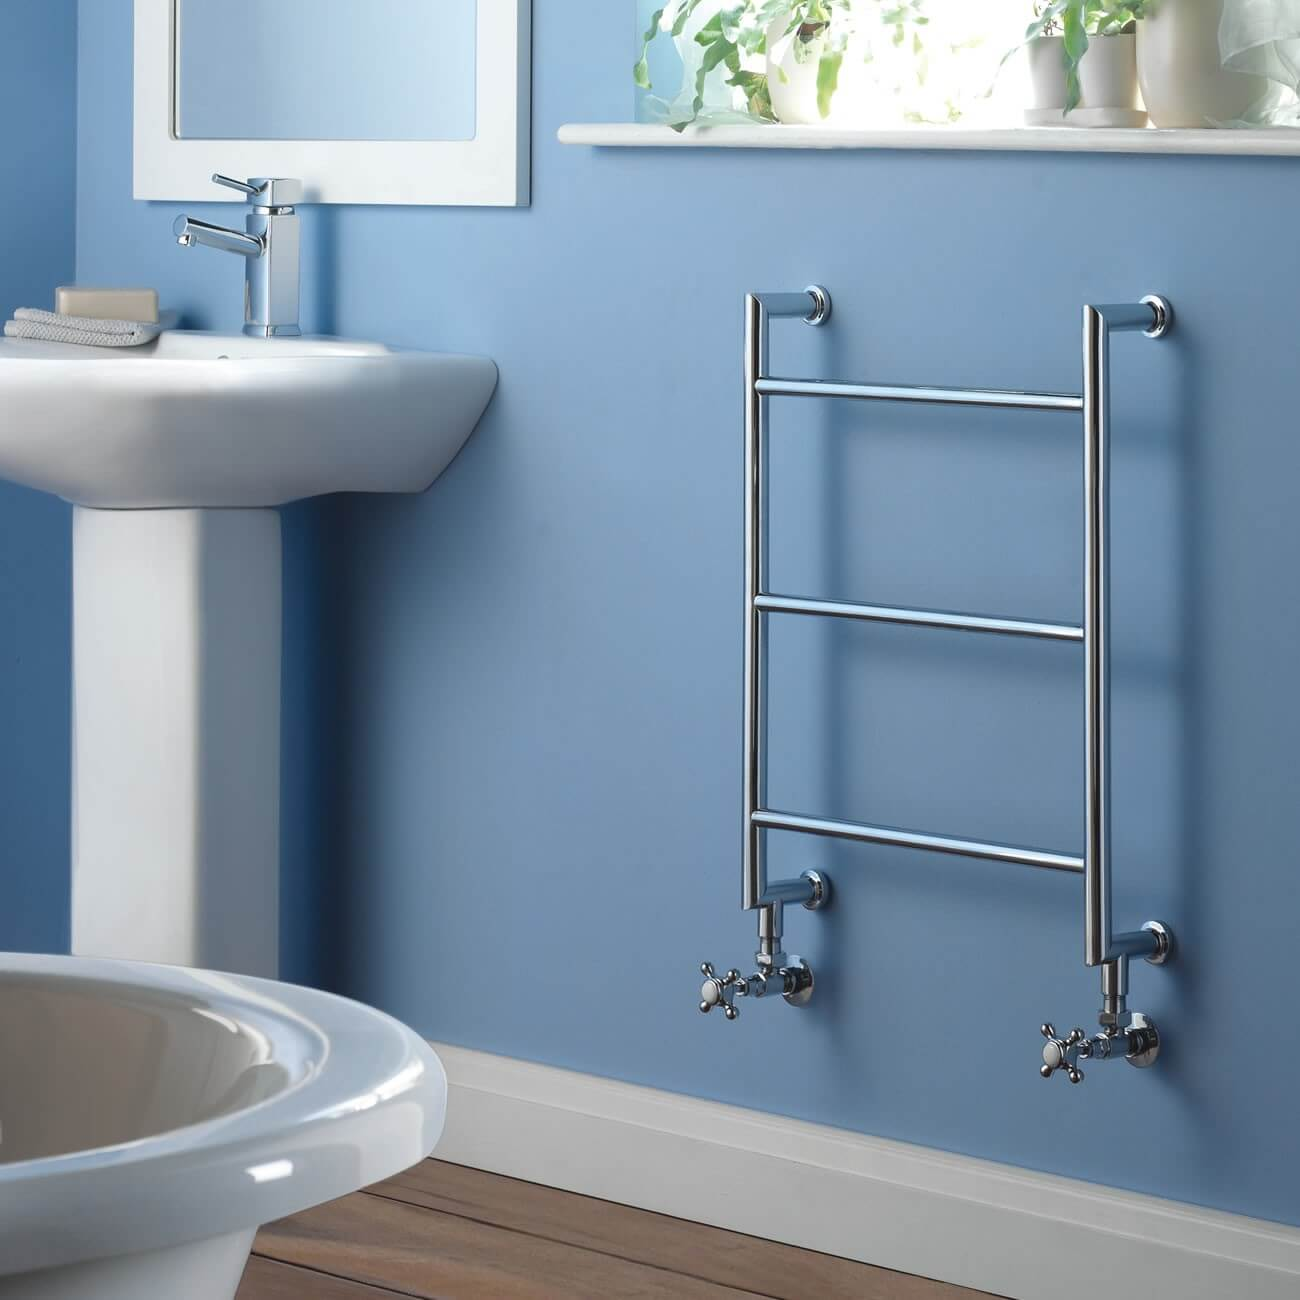 hydronic towel warmer